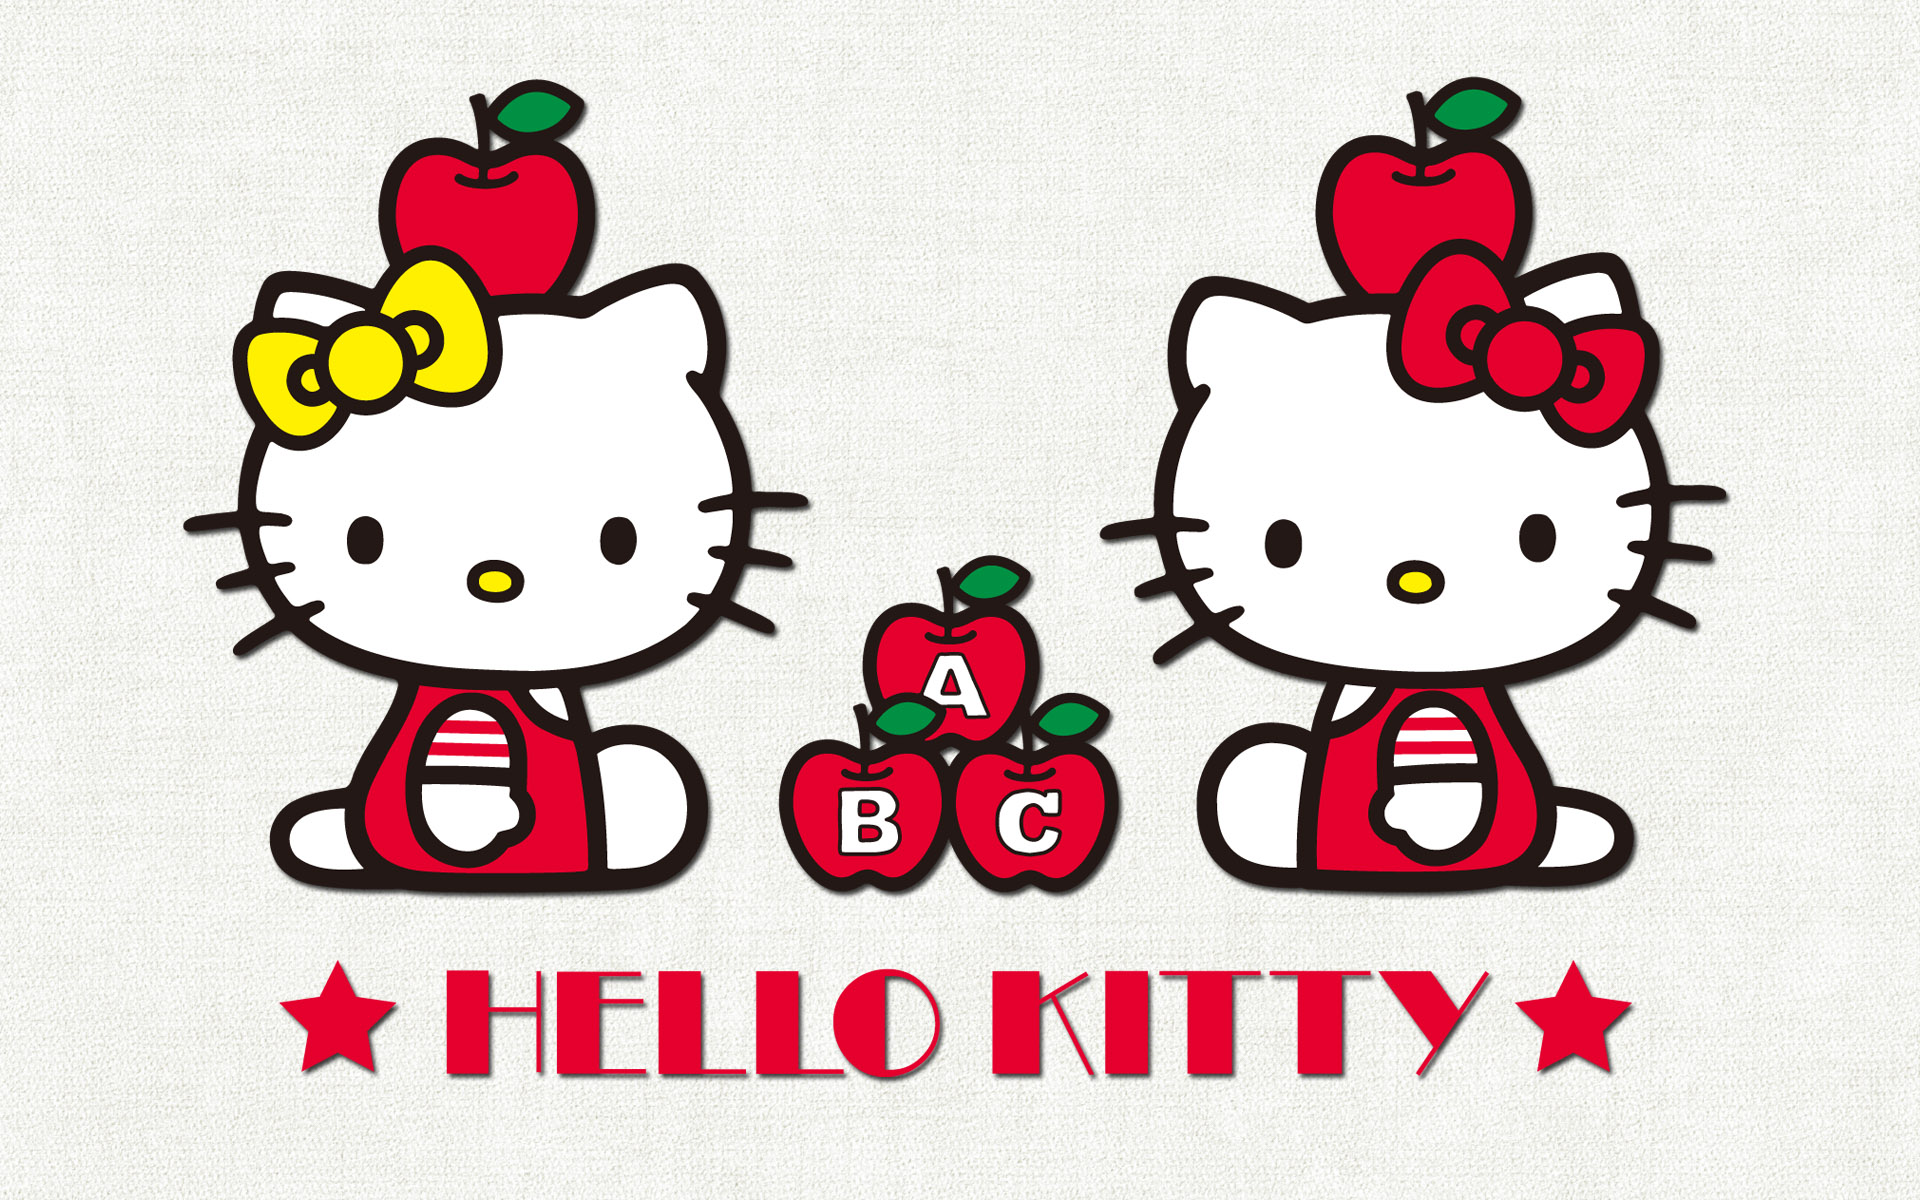 Hello kitty images wallpapers hd wallpaper and background photos 28941592 - Hello kitty hello ...